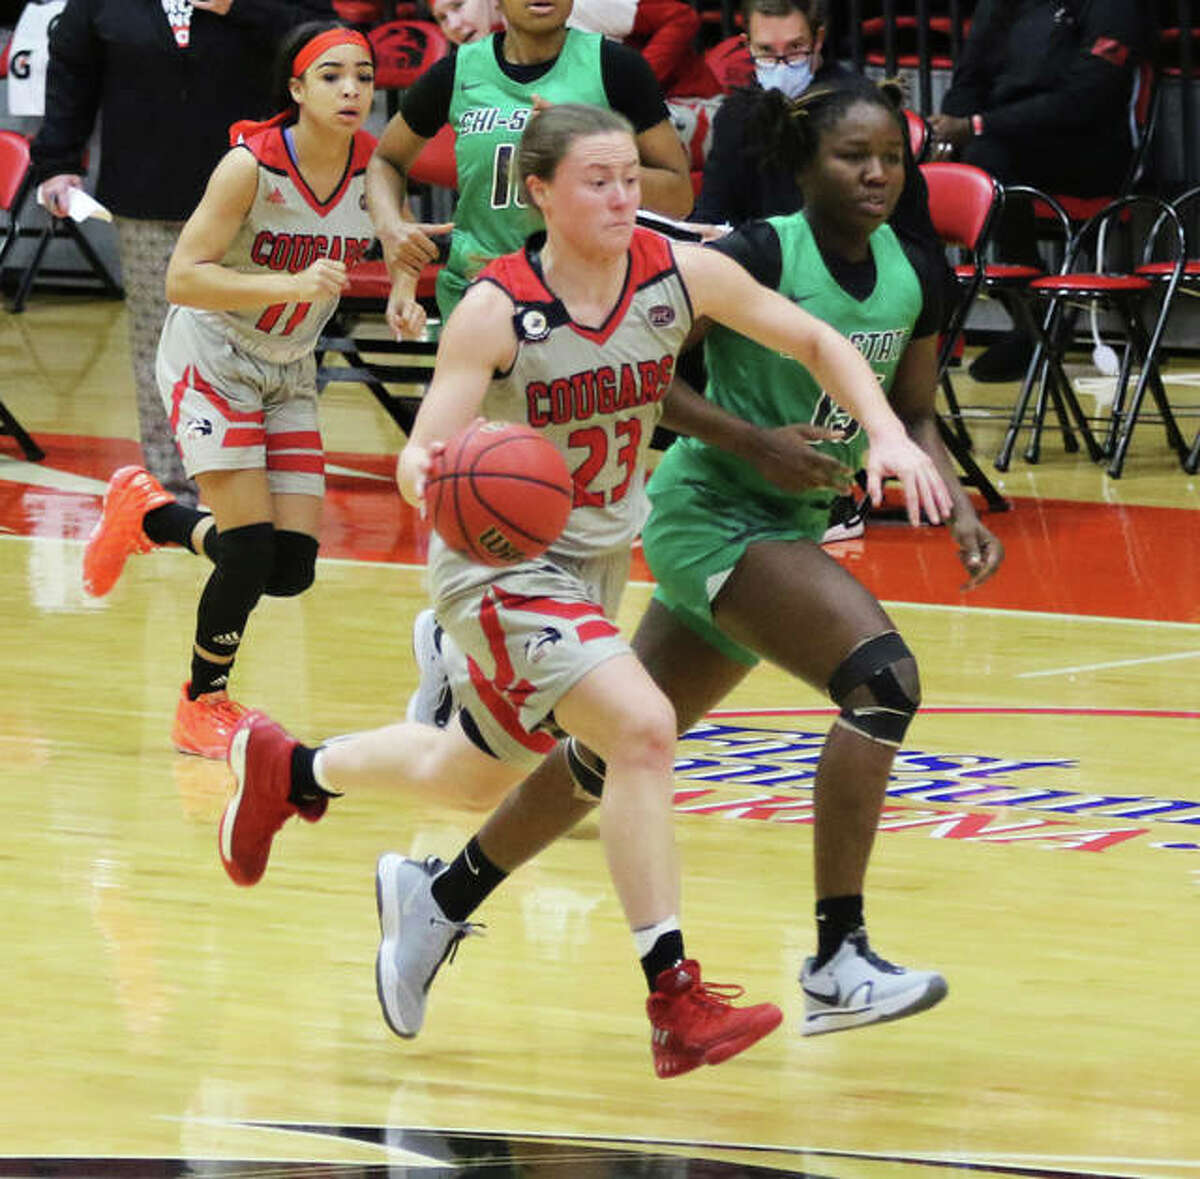 SIUE's Allie Troeckler (23) pushes the ball upcourt while teammate Mikia Keith (left) trails the play during a Dec. 21 game against Chicago State at First Community Arena in Edwardsville. The Cougars were on the road Saturday and lost at Tennessee-Martin 79-45.